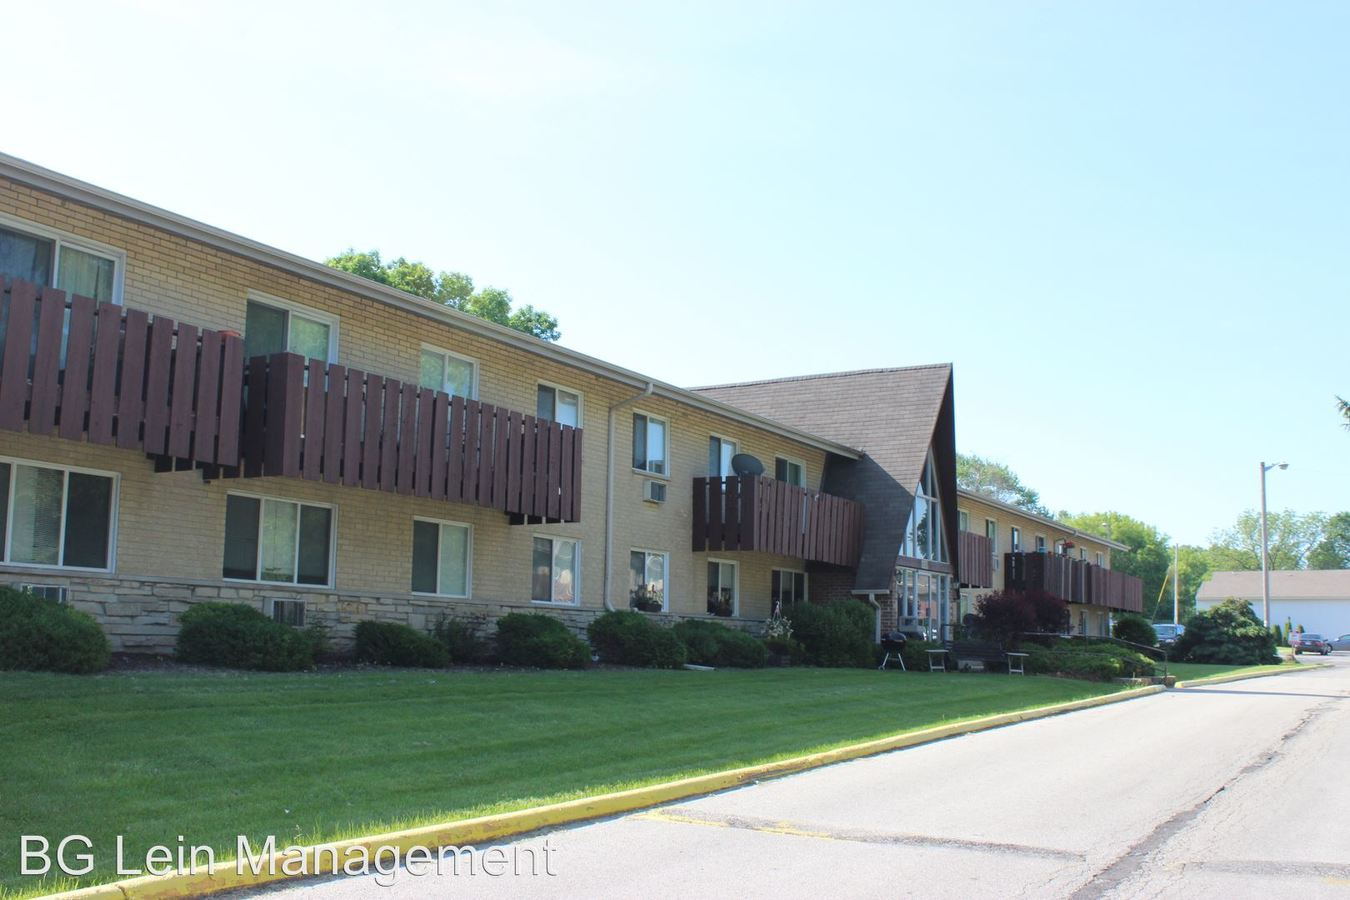 2 Bedrooms 1 Bathroom Apartment for rent at 9535-9545 W Oklahoma Avenue in Milwaukee, WI